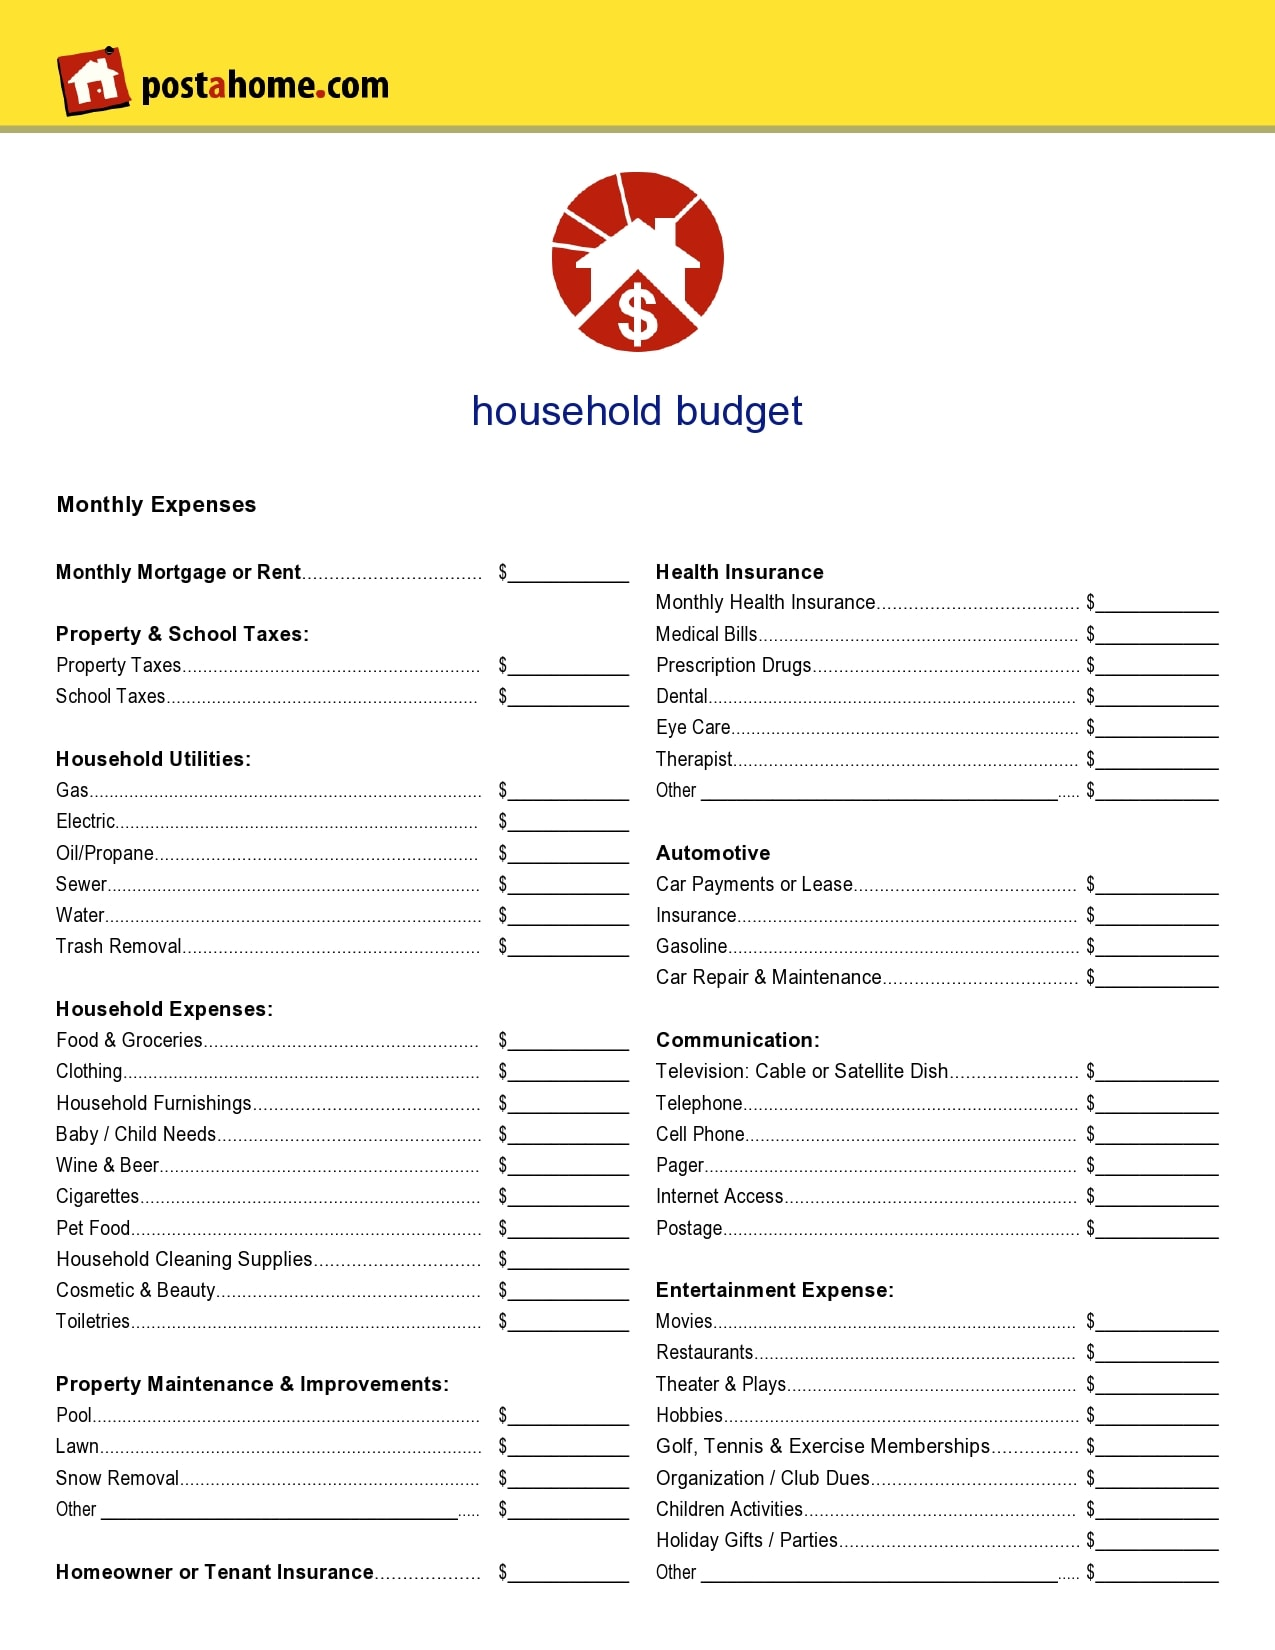 household budget template 26